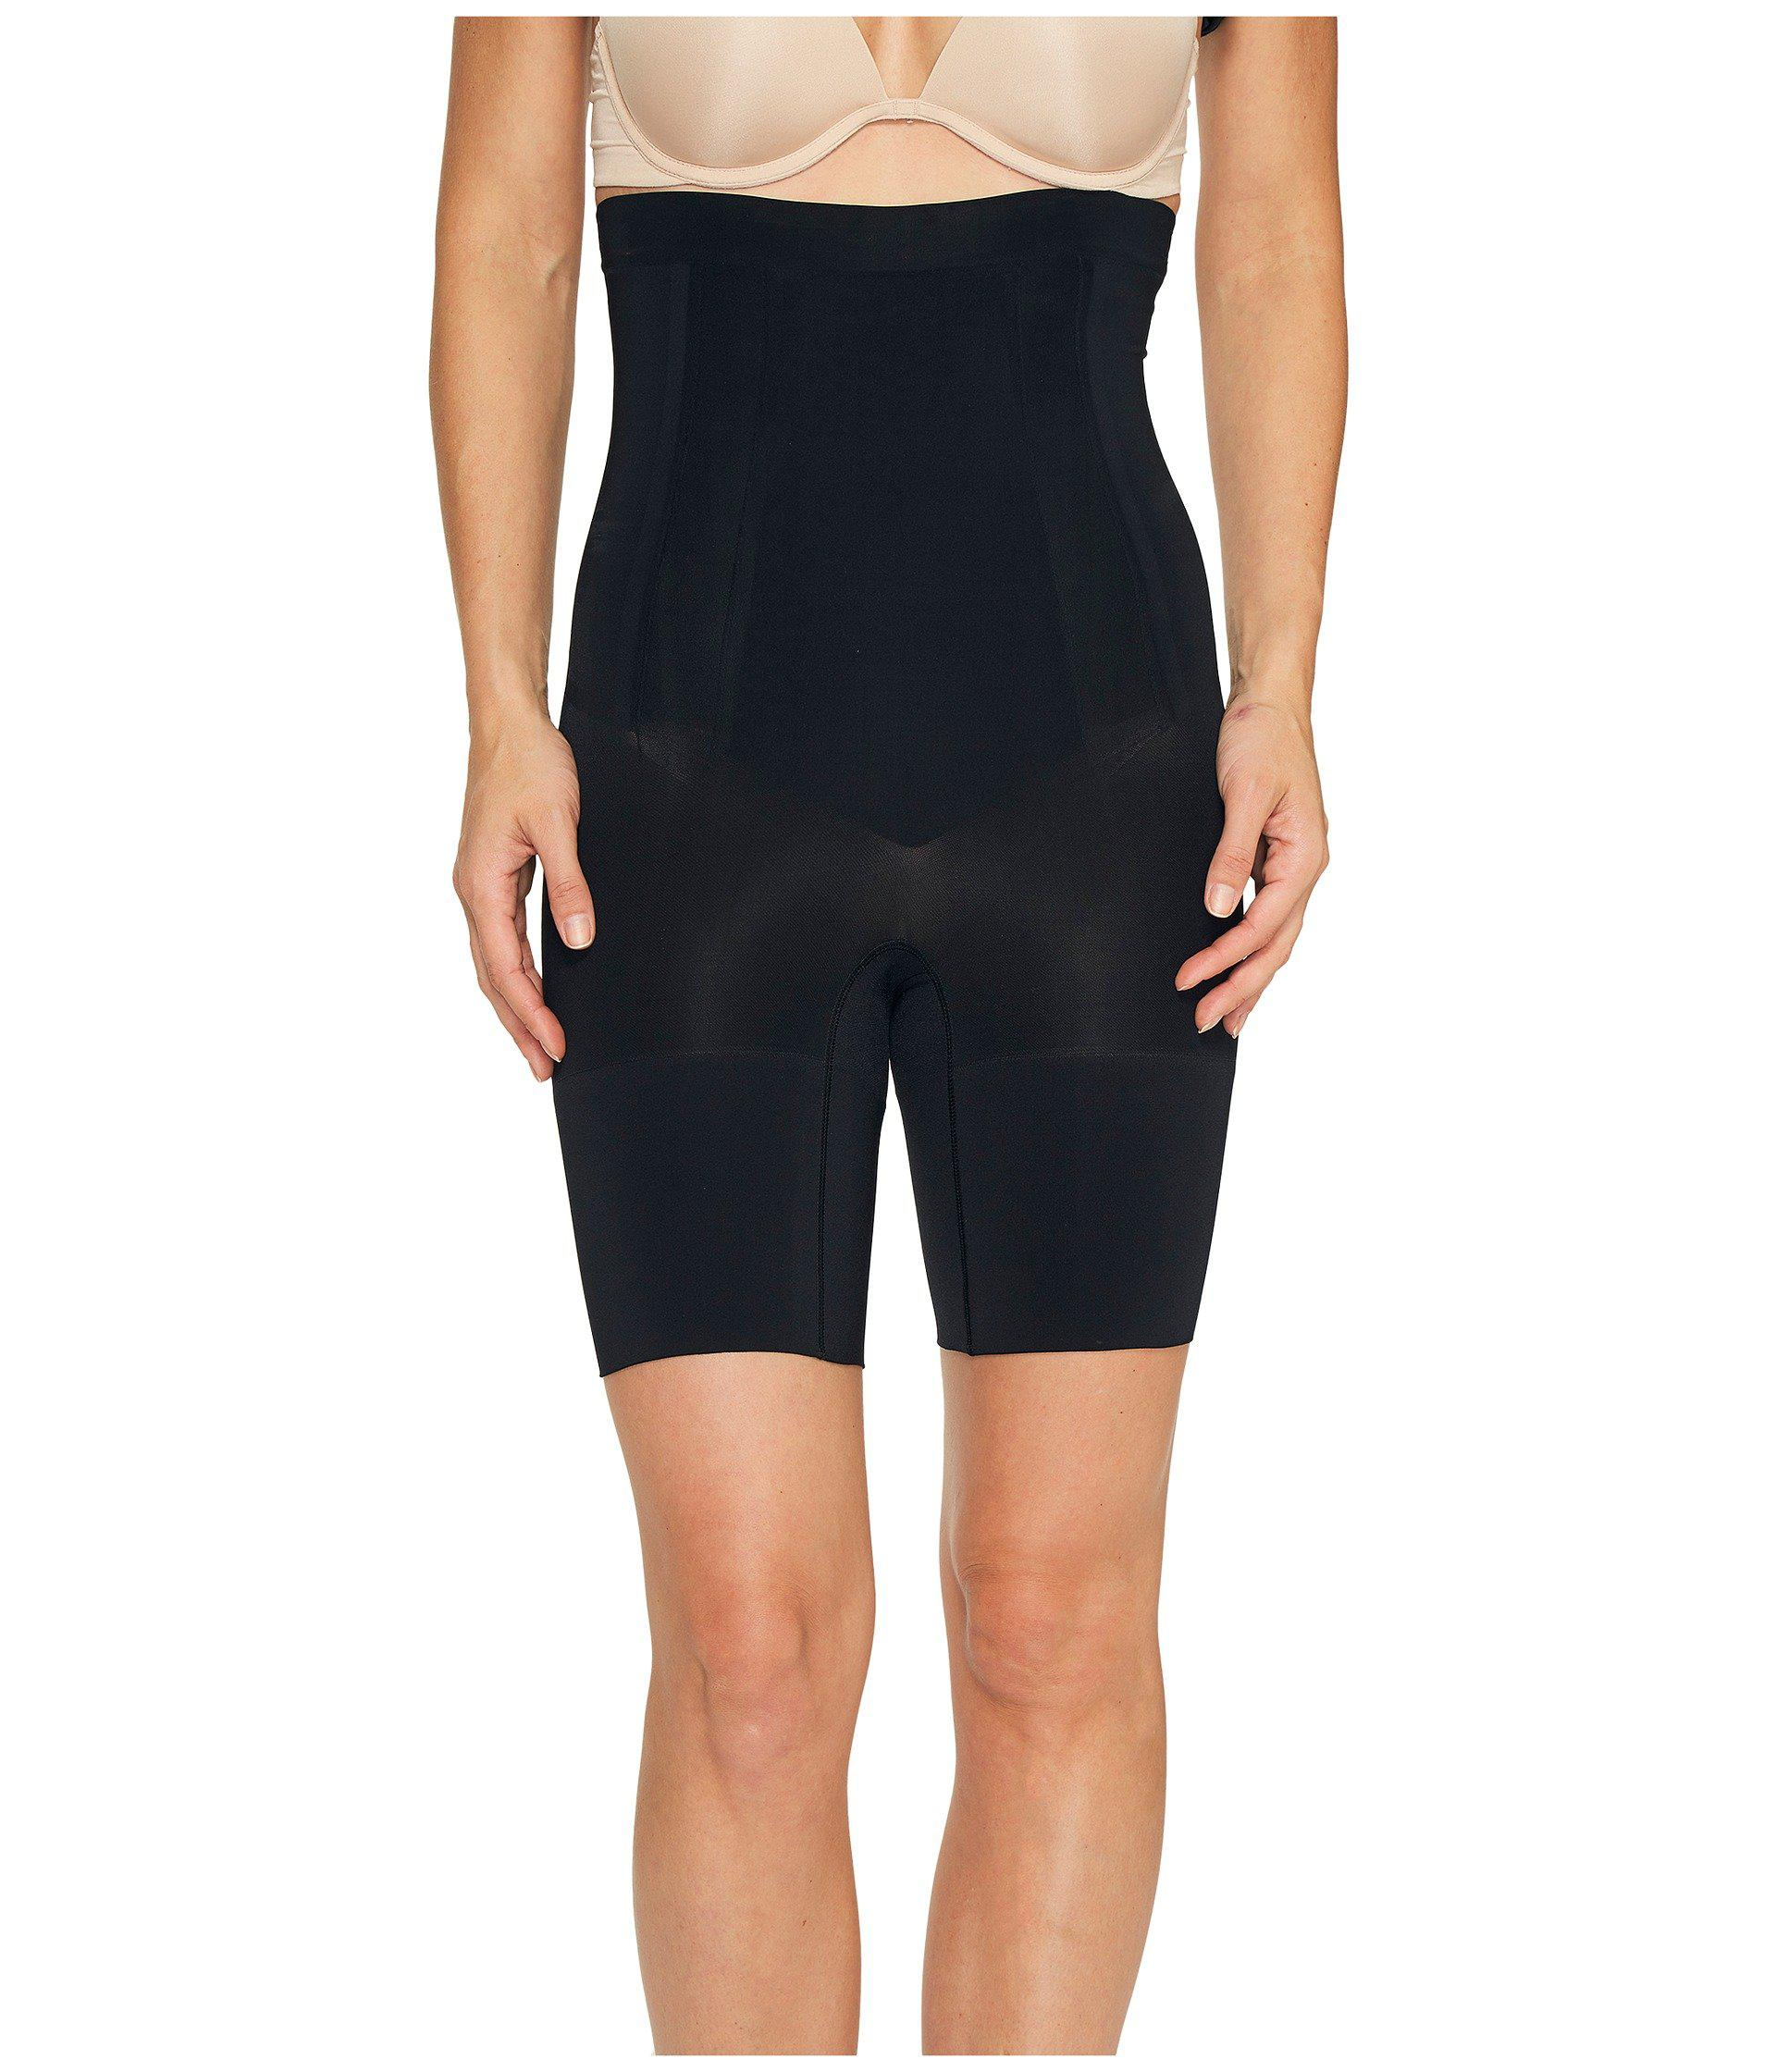 8f3436d9f1 Lyst - Spanx Oncore High-waisted Mid-thigh Short (very Black ...